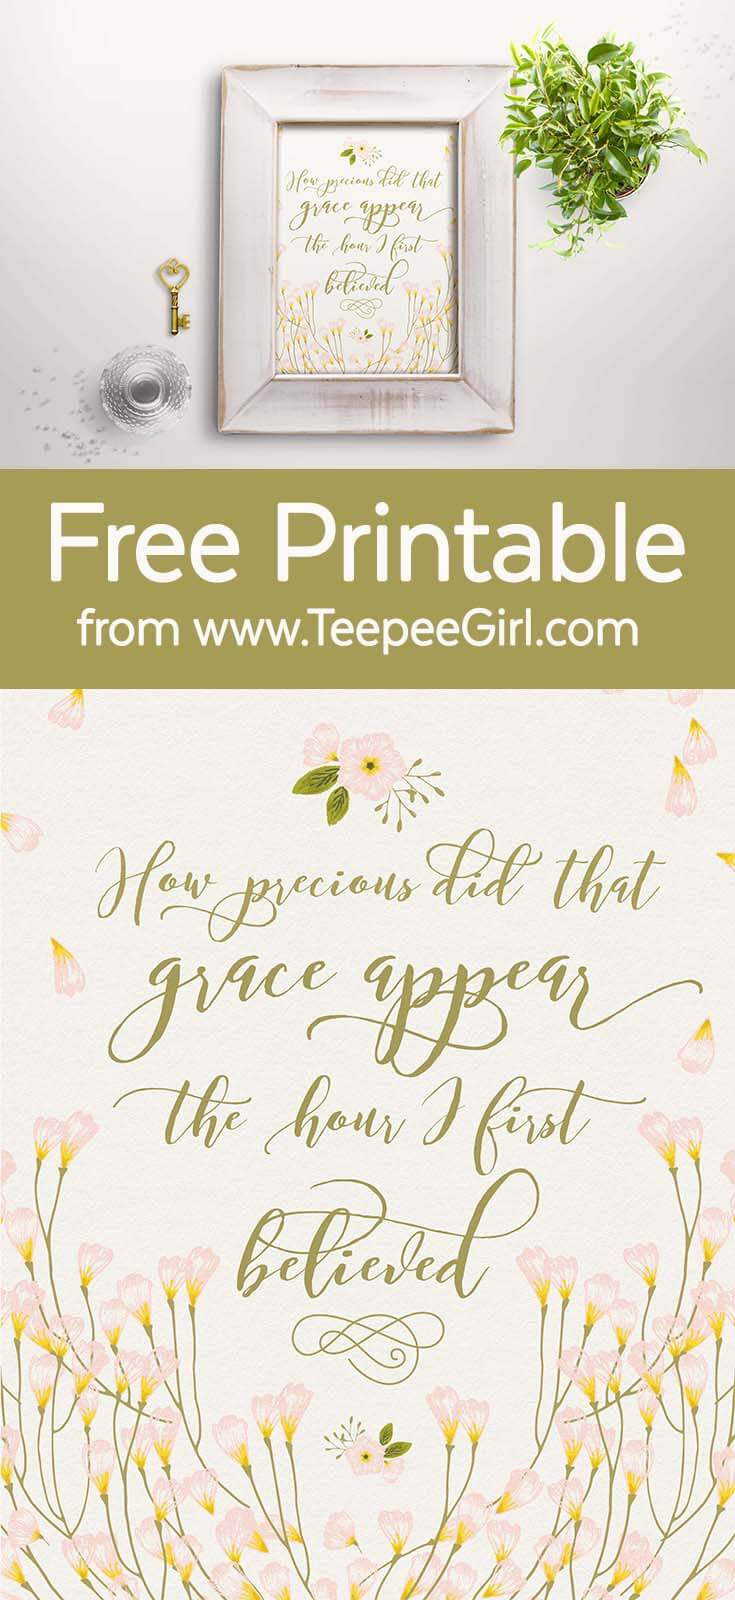 Amazing Grace Free 8x10 Printable from www.TeepeeGirl.com